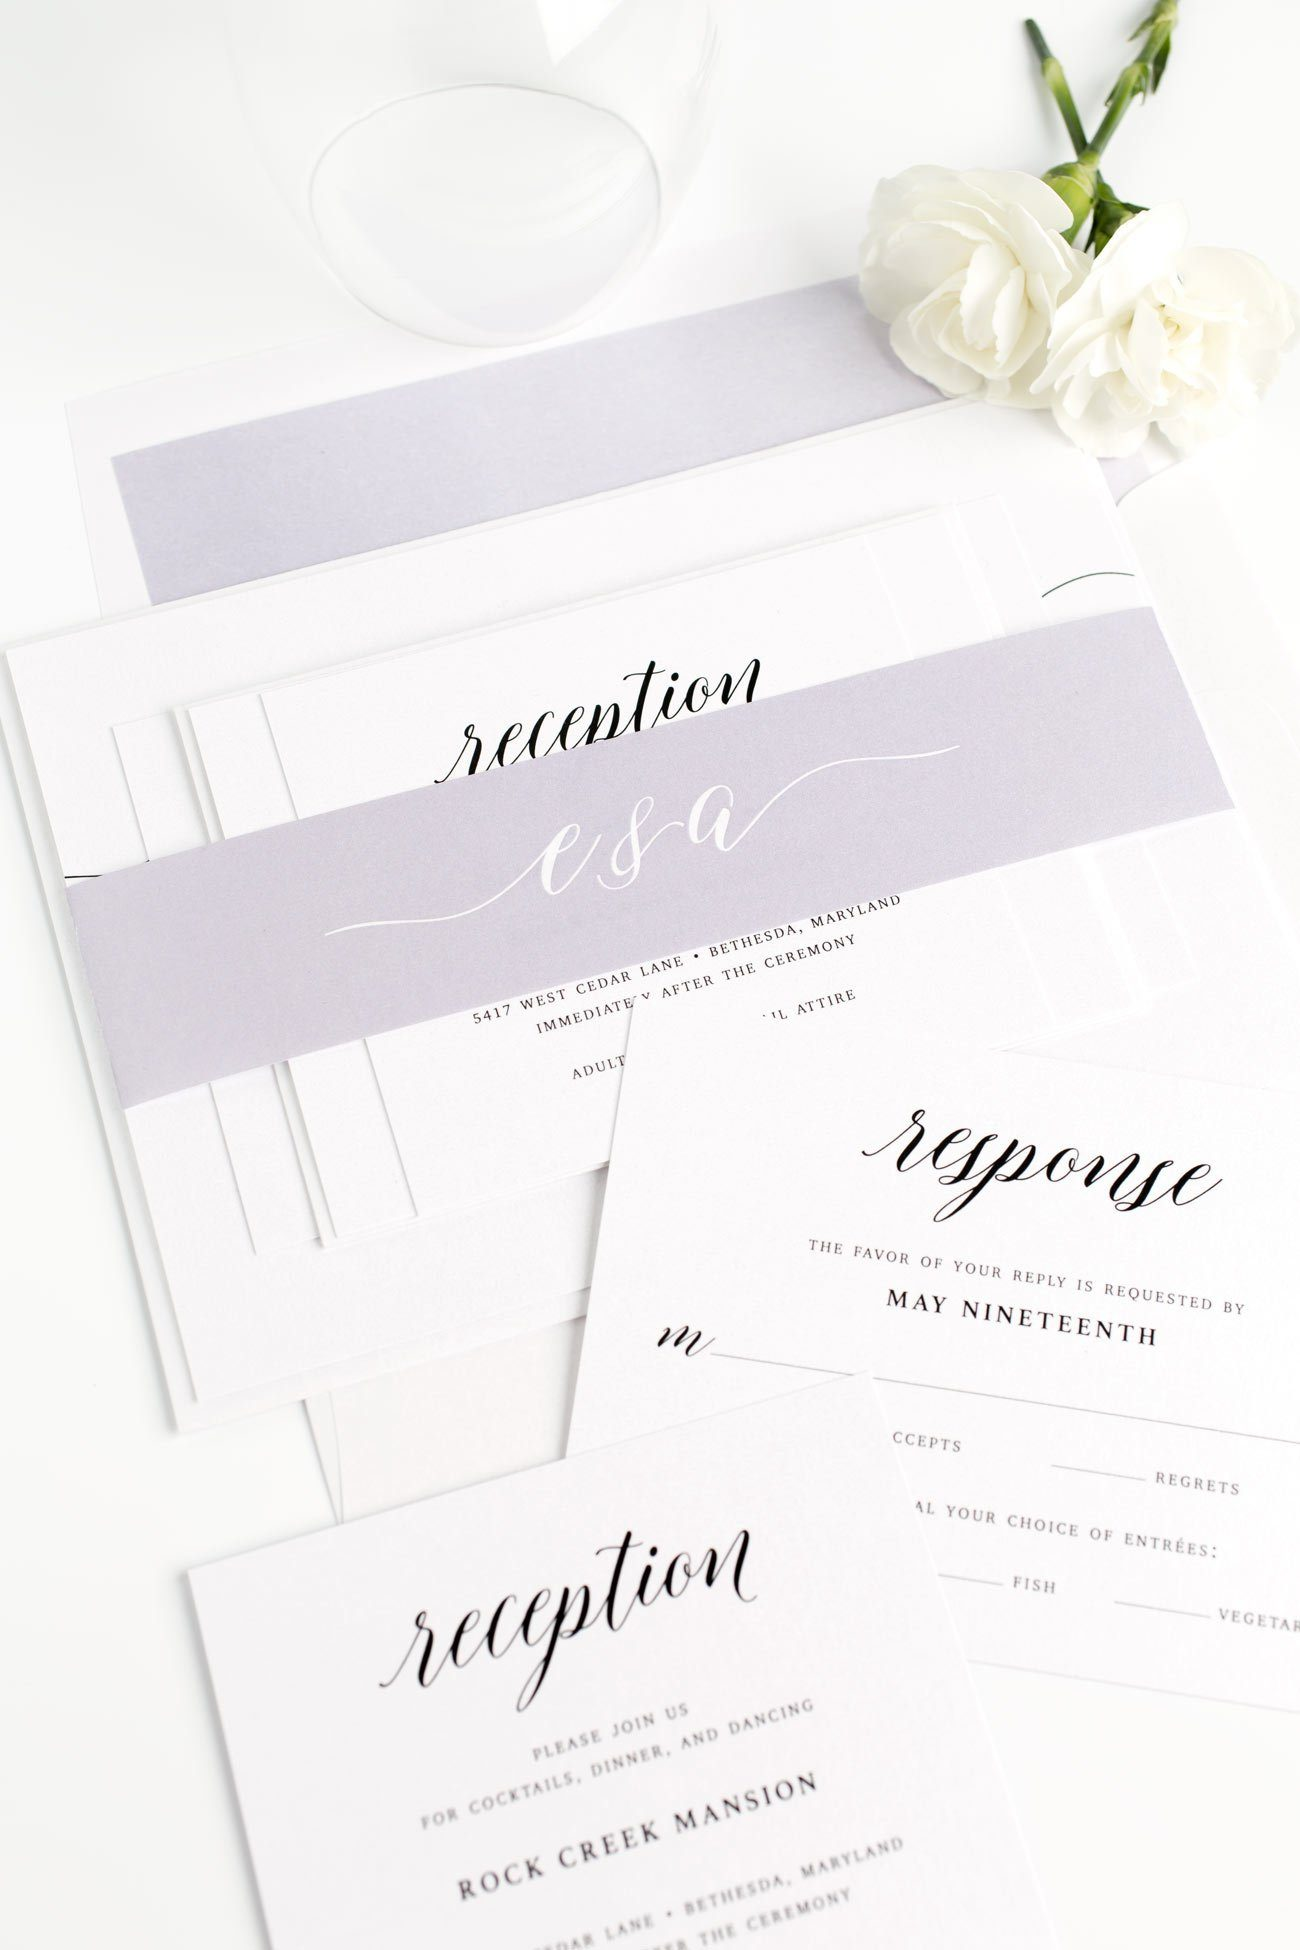 Romantic Watercolor Wedding Invitations in Lavender with flowing Calligraphy